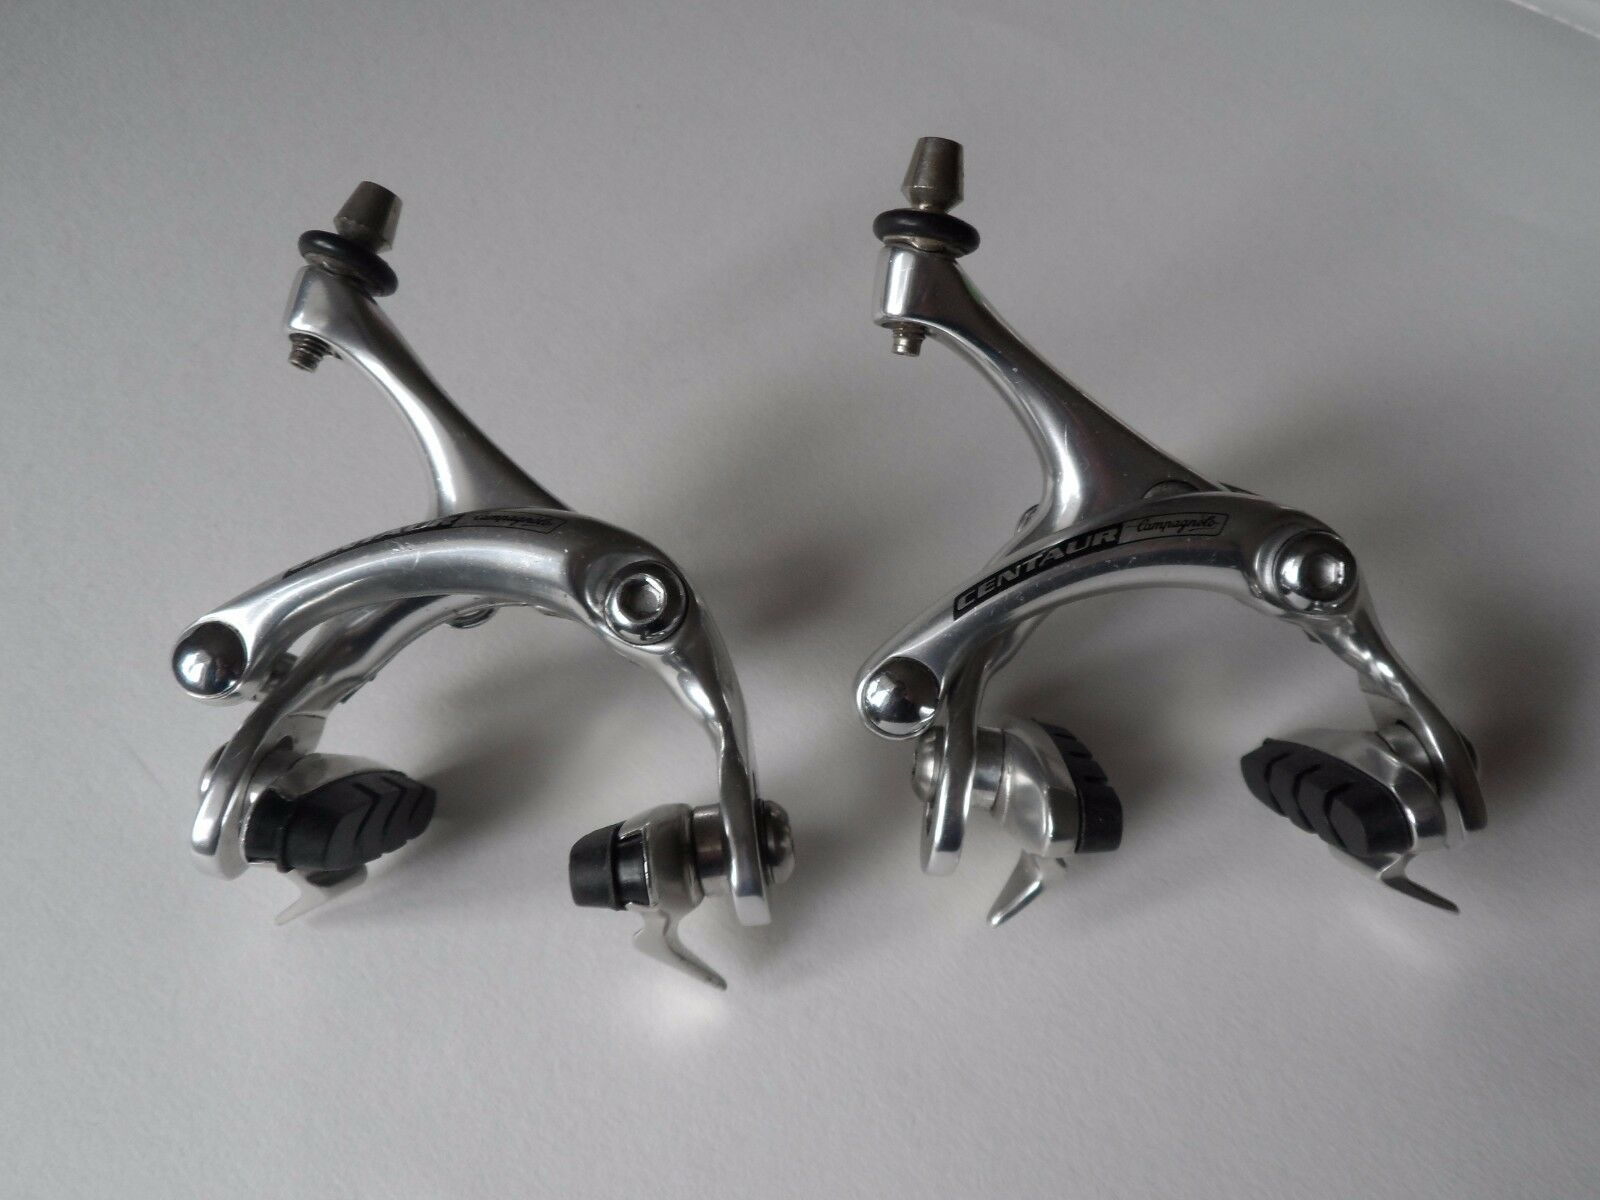 Vintage Campagnolo Centaur dual pivot brake calipers with new pads